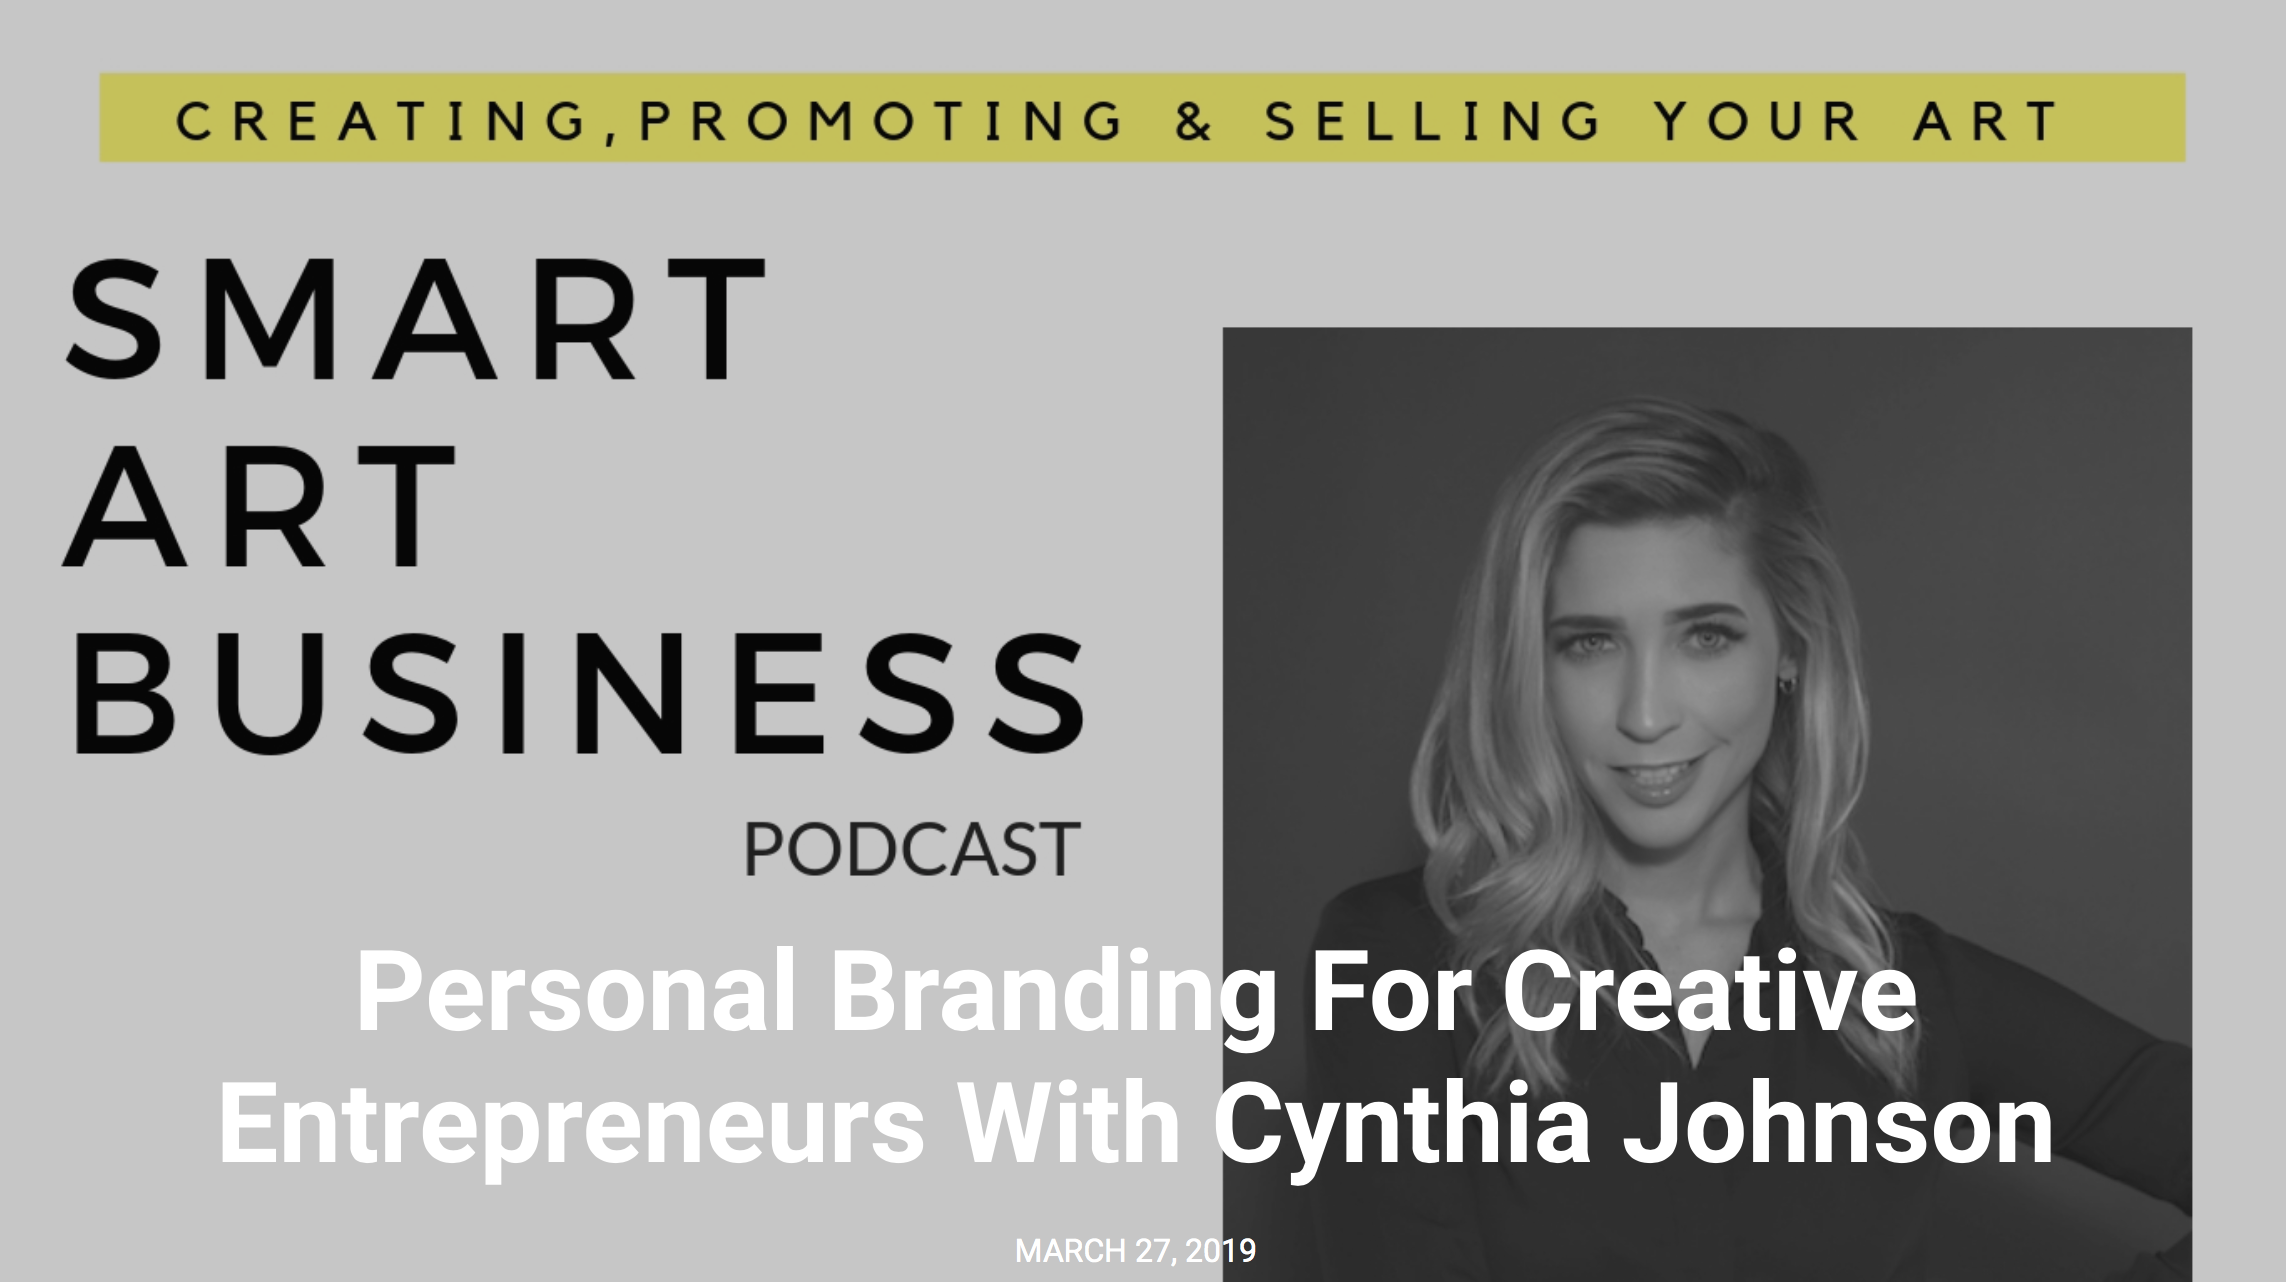 Personal Branding For Creative Entrepreneurs With Cynthia Johnson - CANVAS